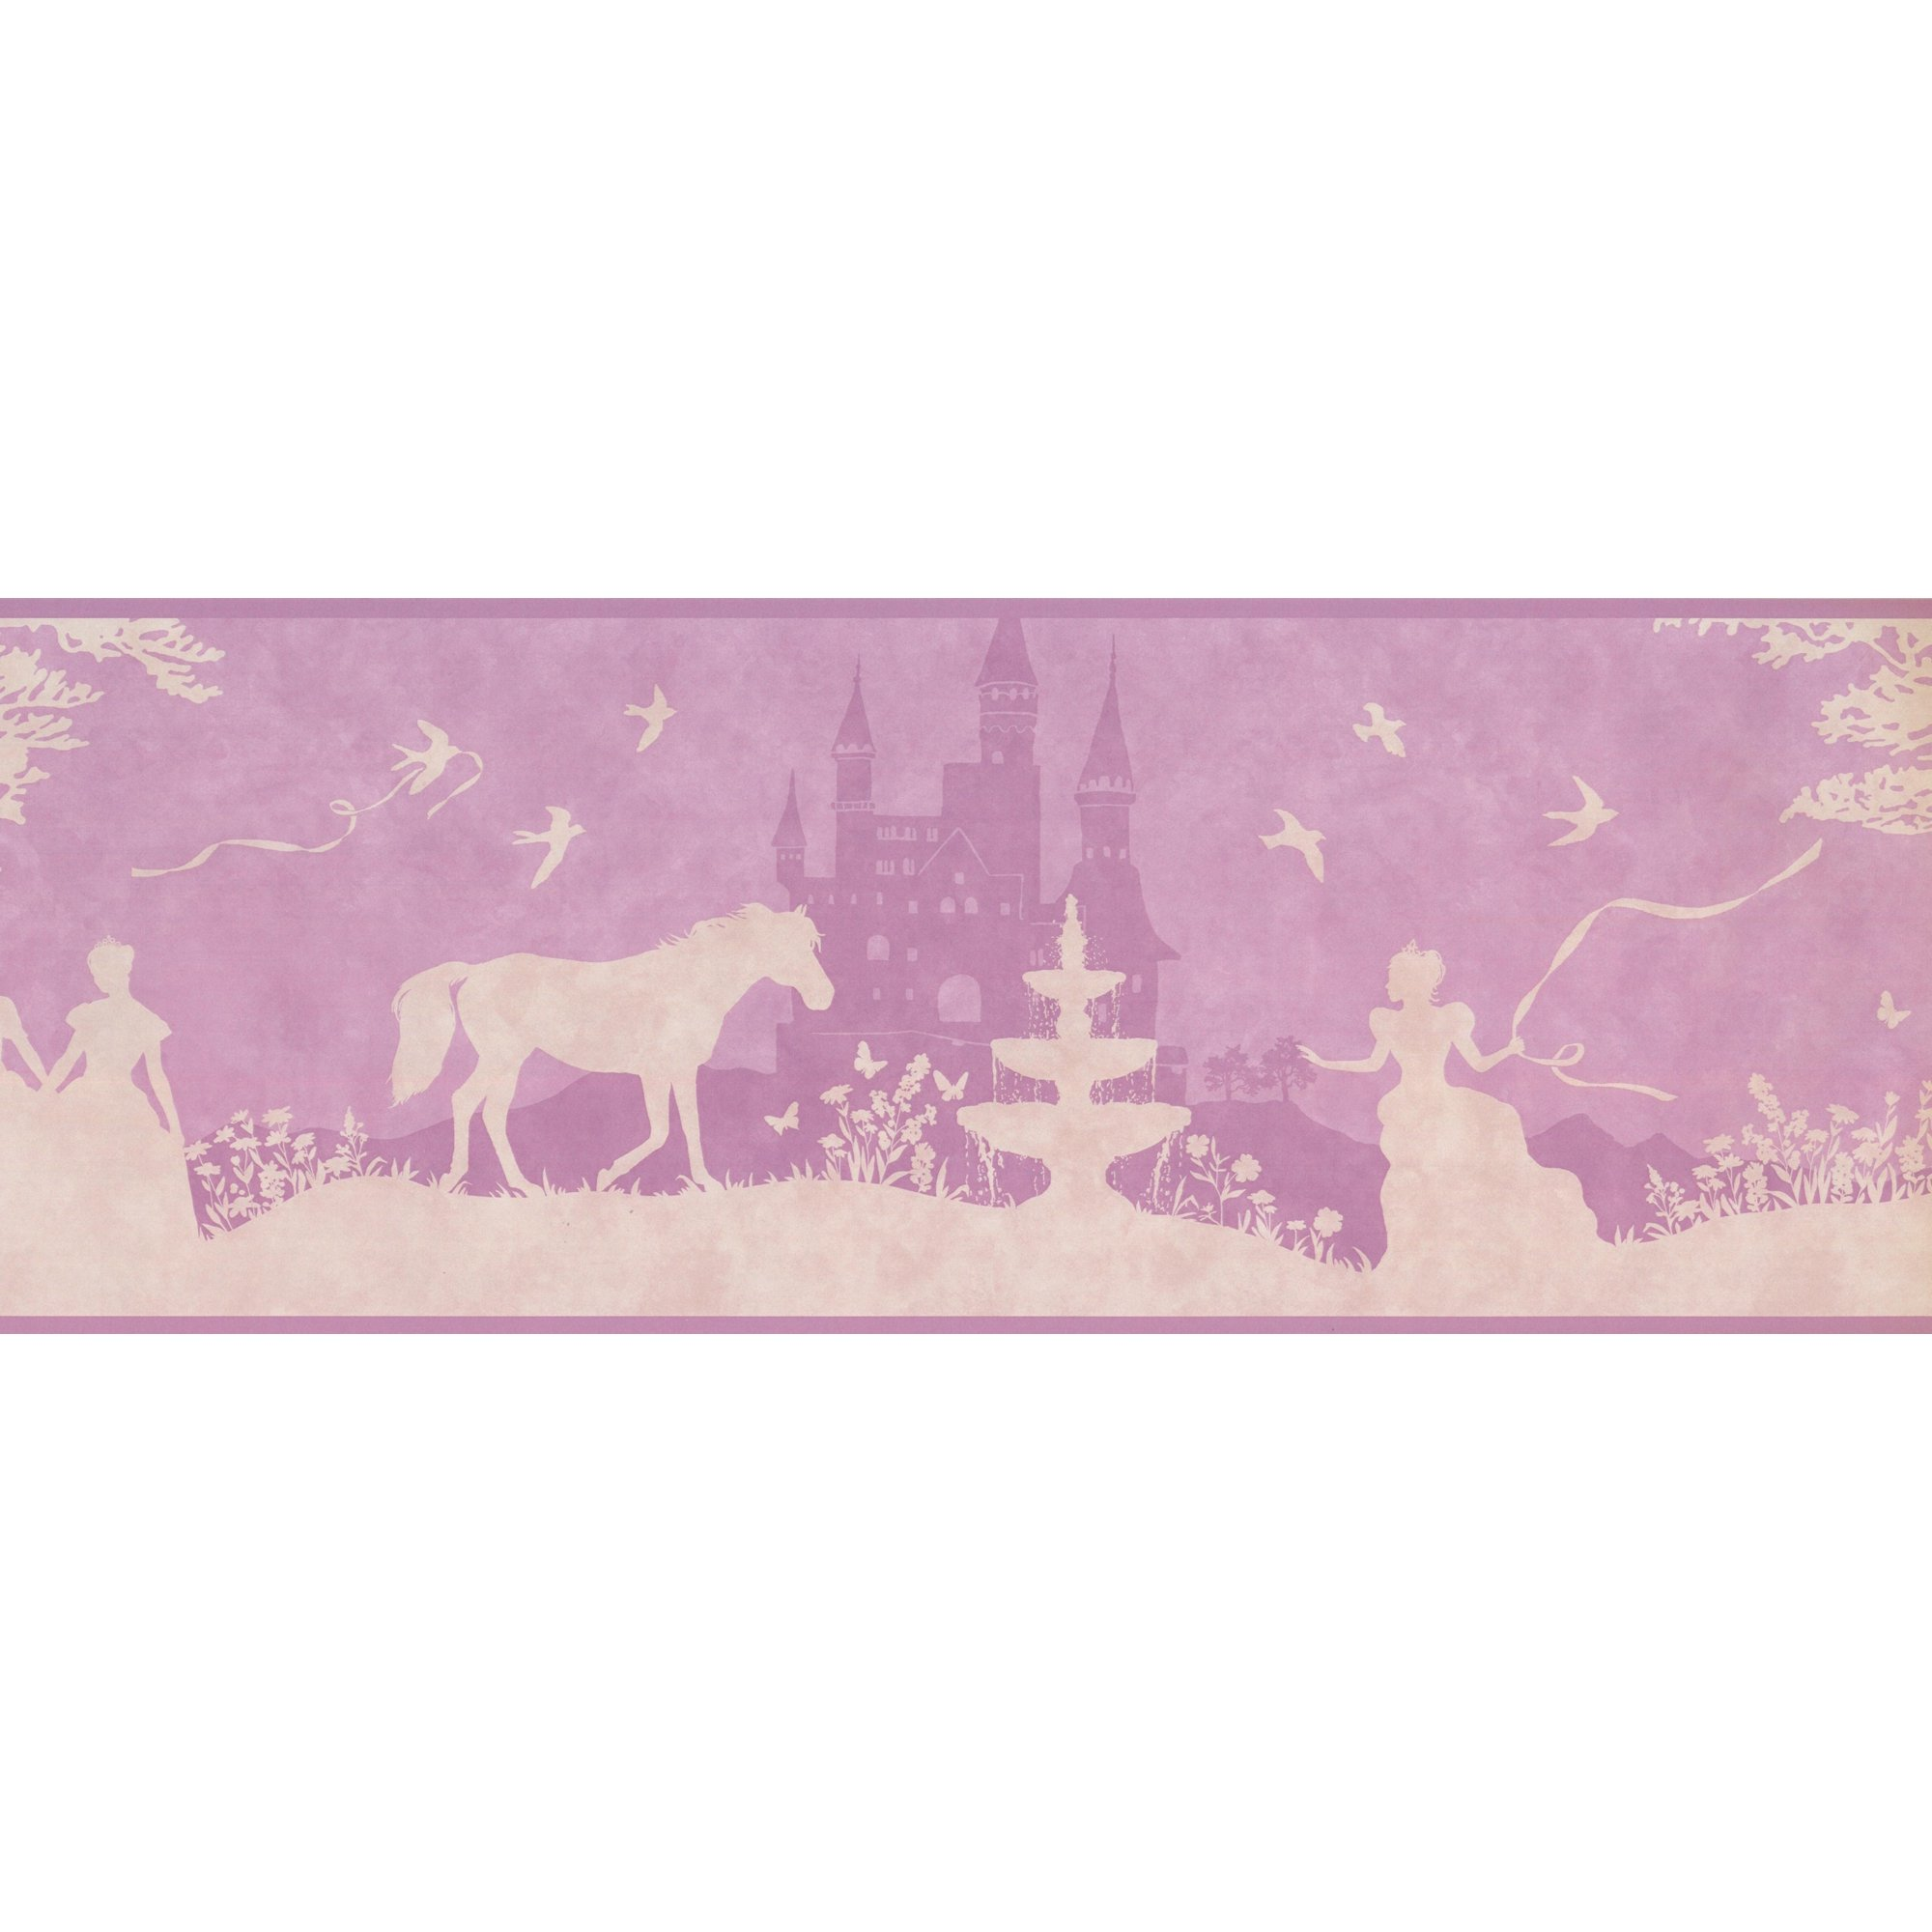 Sensational Princess Castle Horse Beige Mauve Purple Wallpaper Border For Kids Bedroom Bathroom Playroom Roll 15 X 9 Interior Design Ideas Gentotryabchikinfo